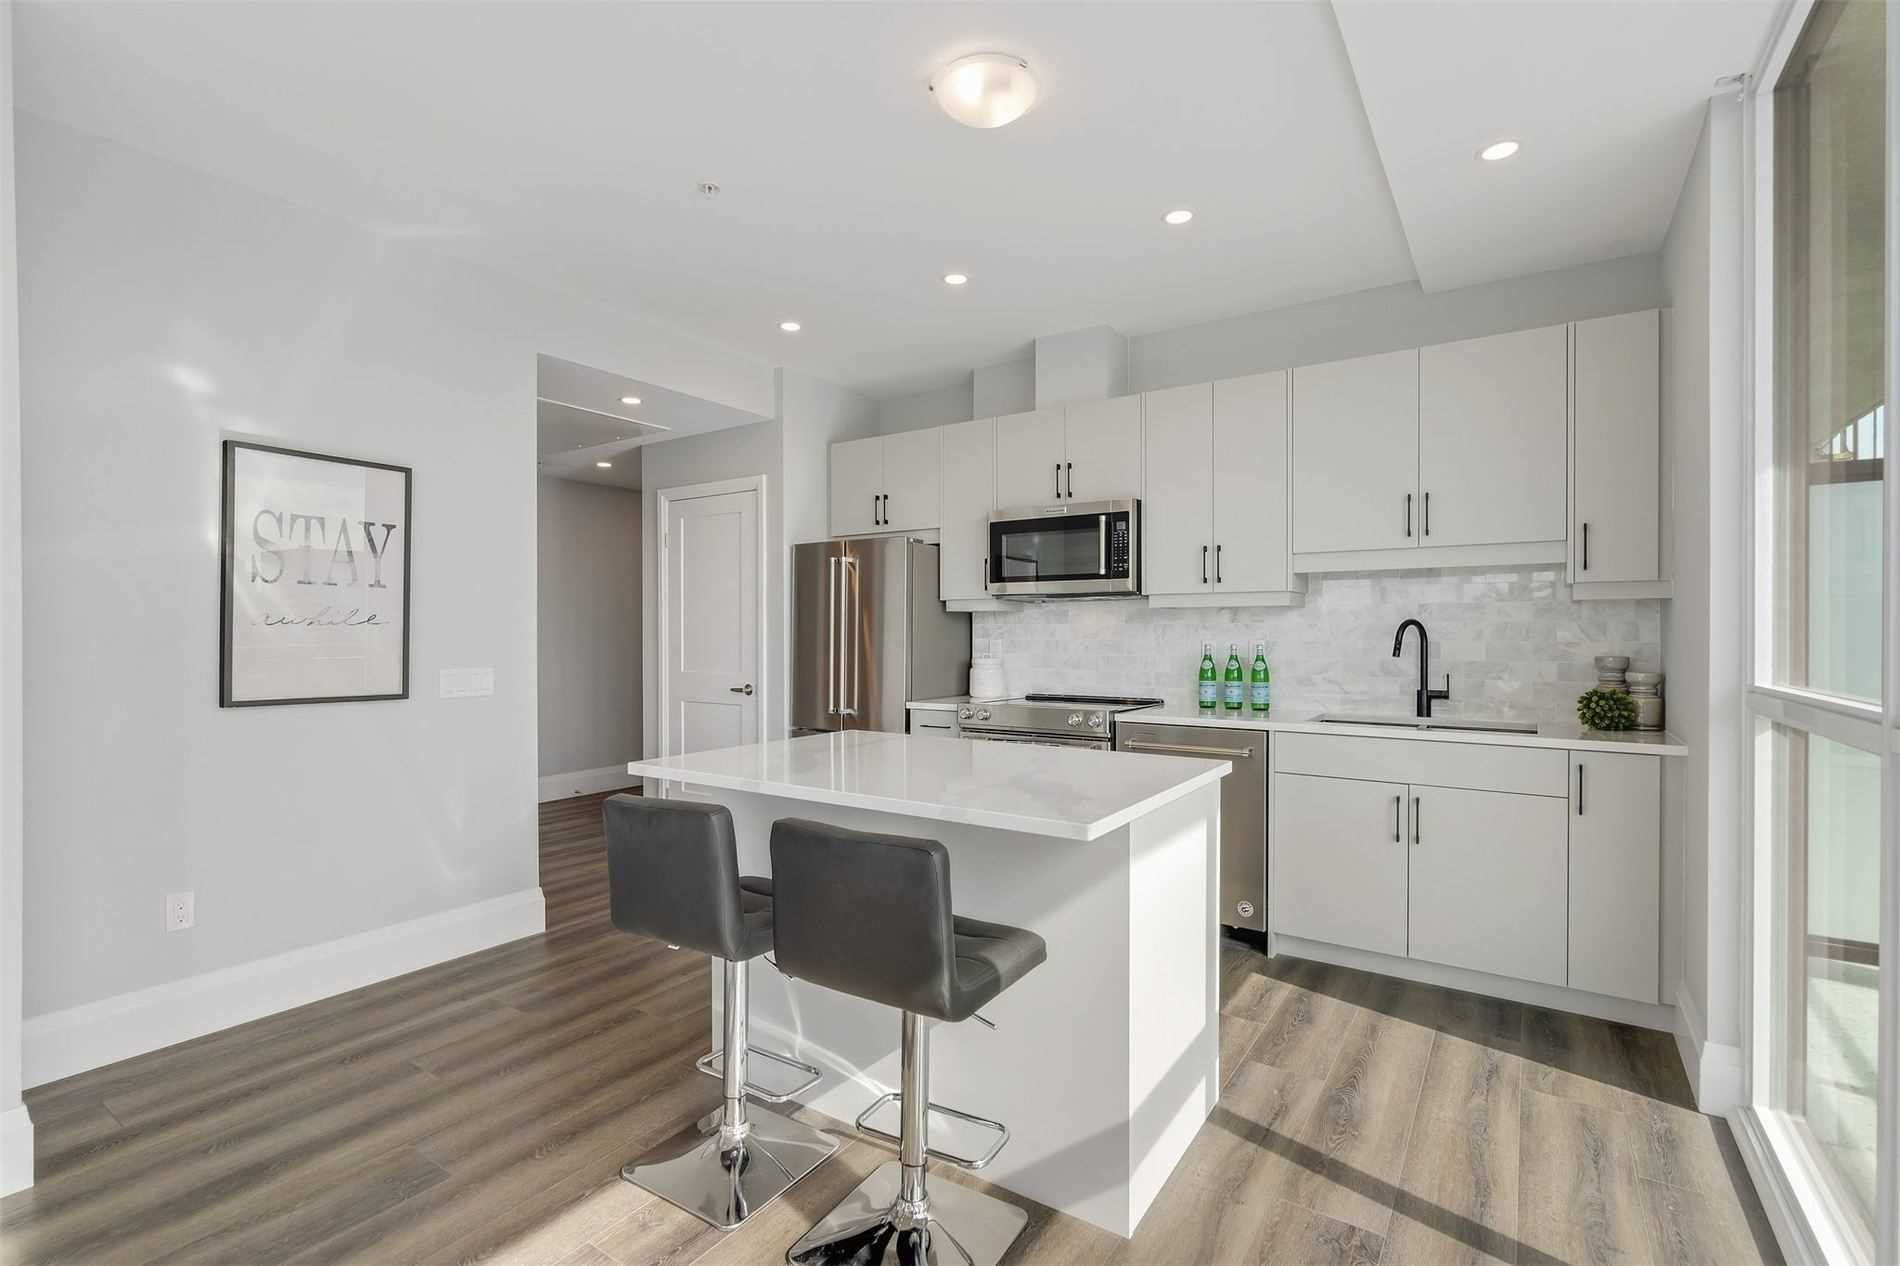 Comm Element Condo For Sale In Kitchener , 1 Bedroom Bedrooms, ,1 BathroomBathrooms,Comm Element Condo,For Sale,705,Charles